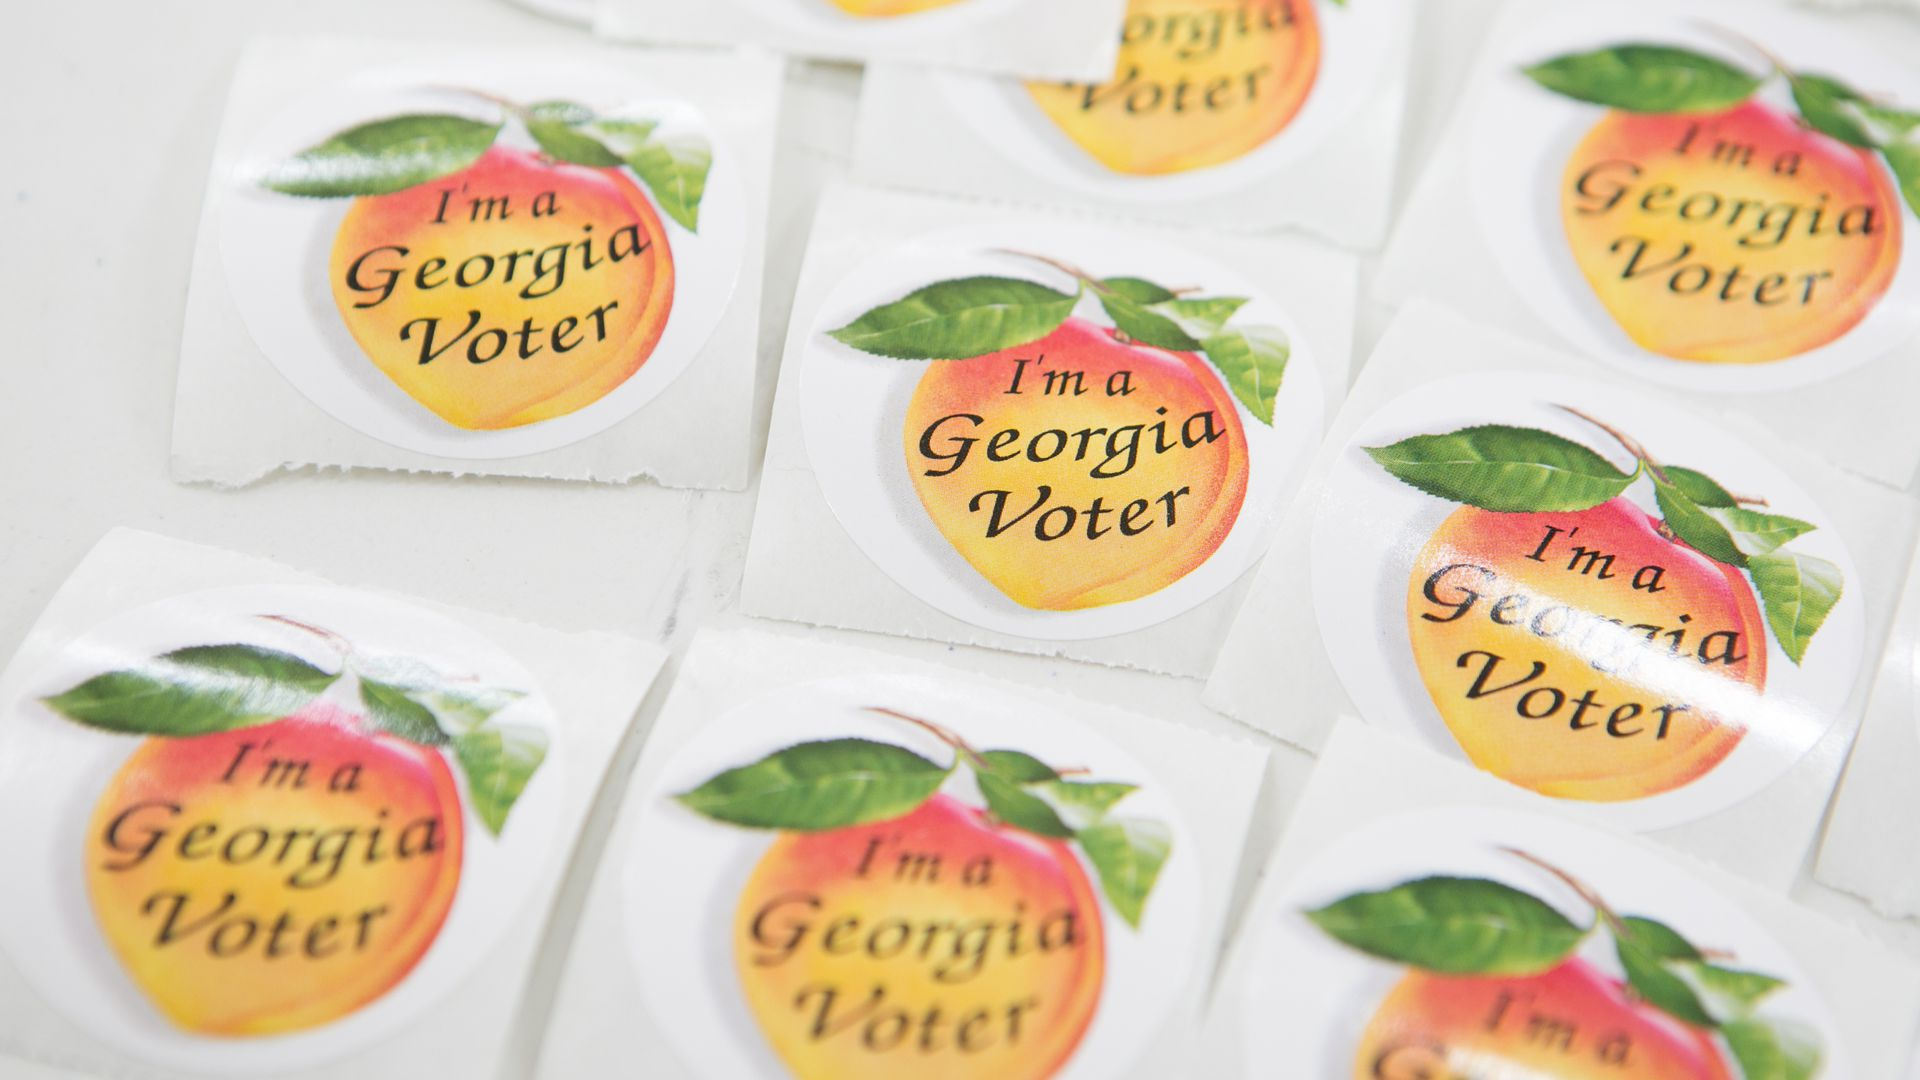 Georgia voter stickers with peaches.